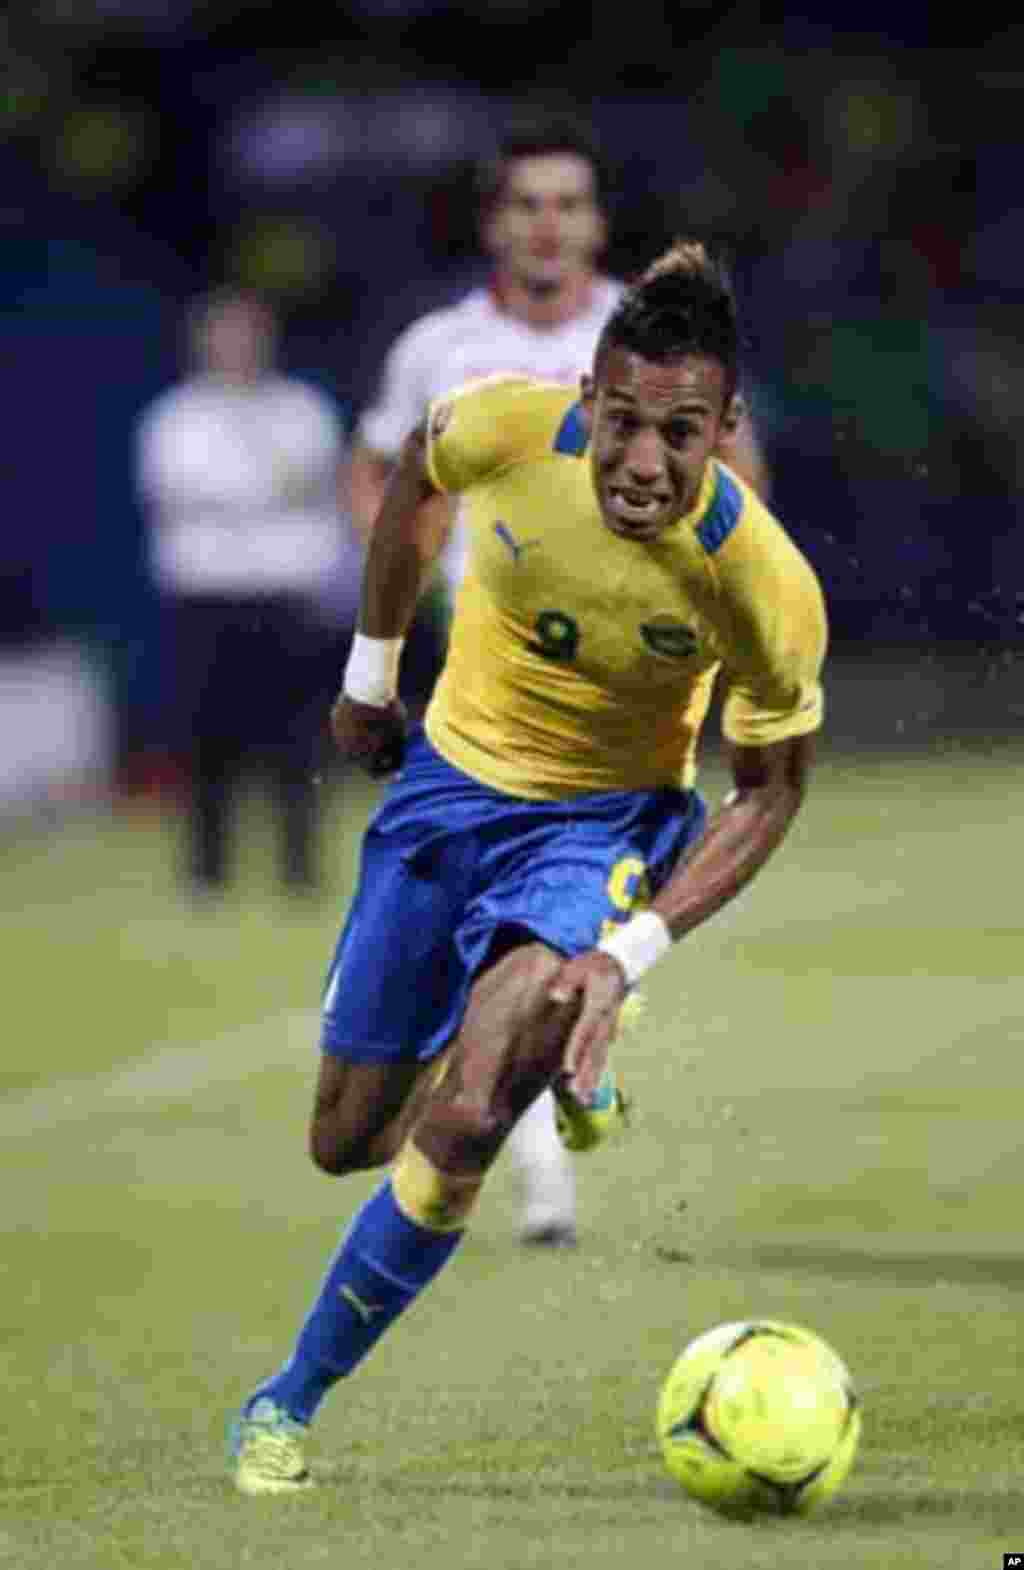 Gabon's Pierre Emerick Aubameyang runs with the ball during their African Cup of Nations Group C soccer match against Tunisia at Franceville stadium in Gabon January 31, 2012.